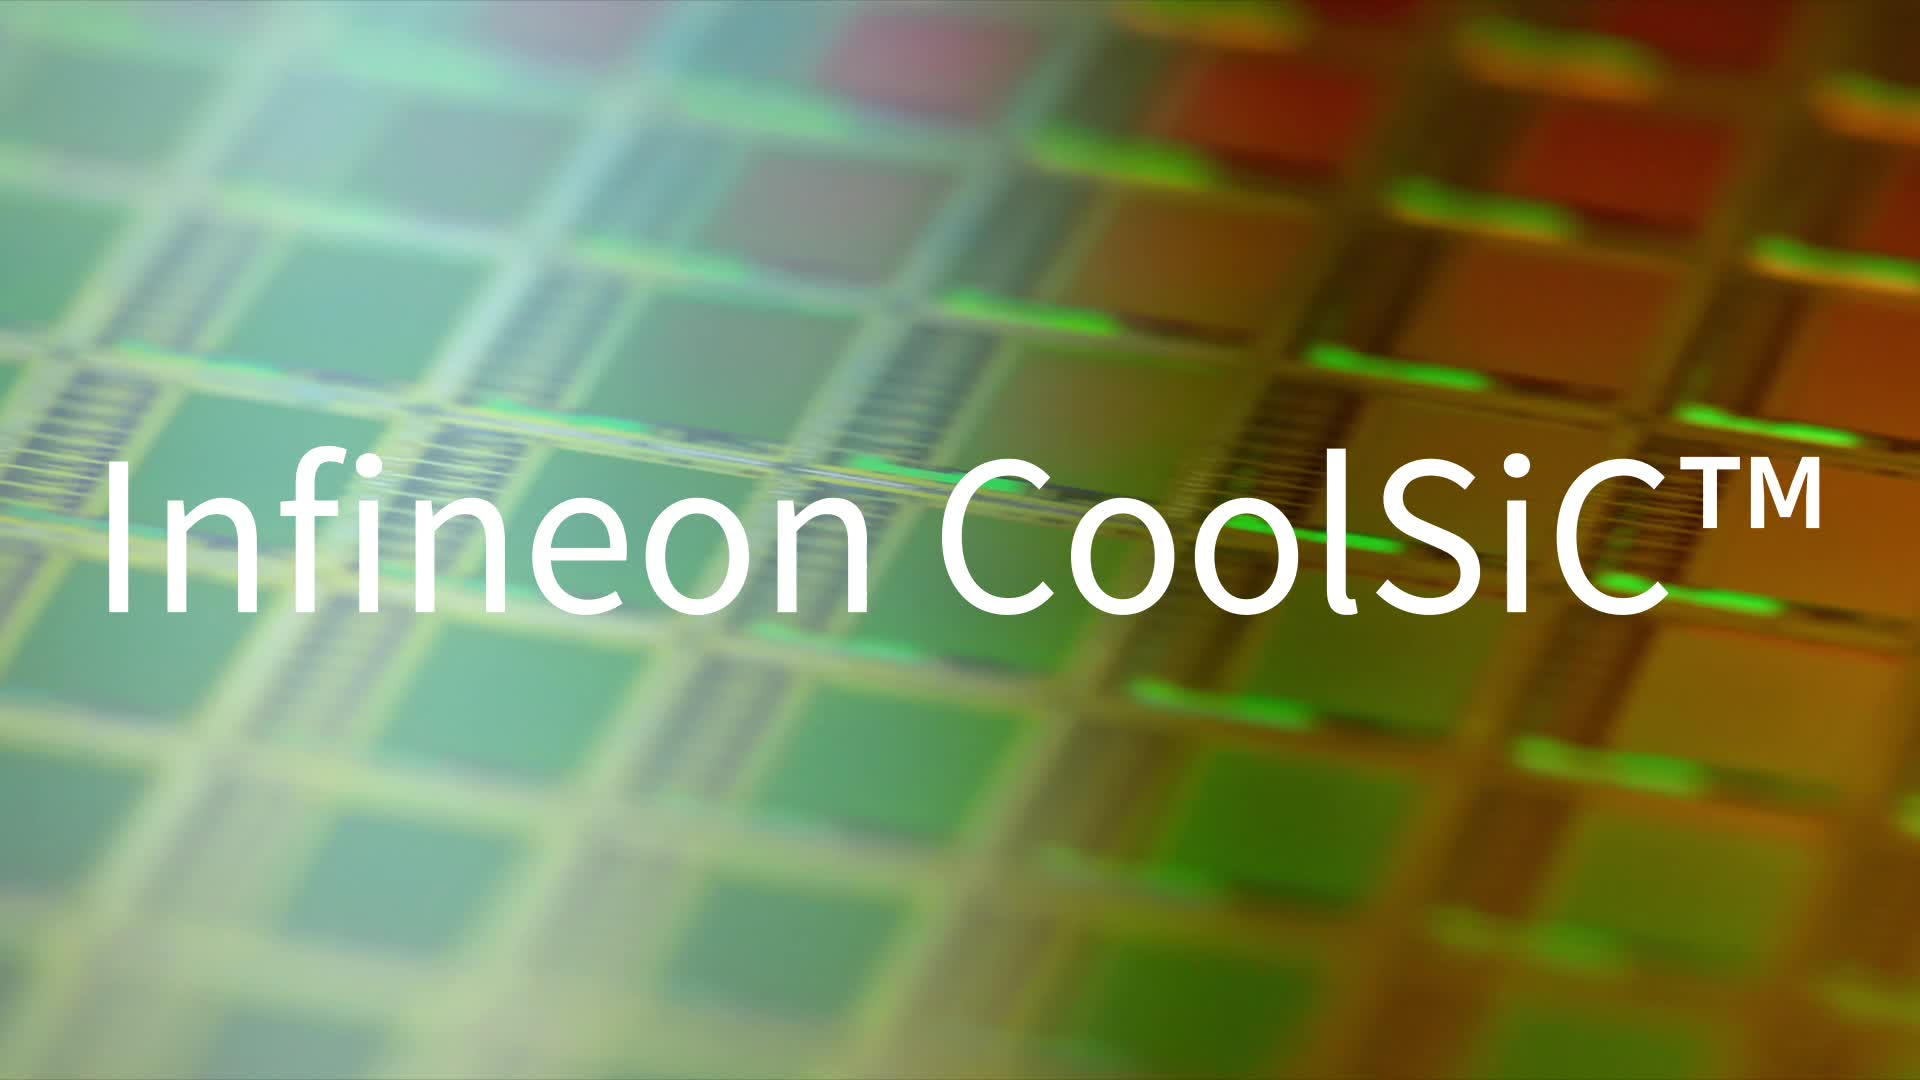 Infineon CoolSiC™ in industrial applications